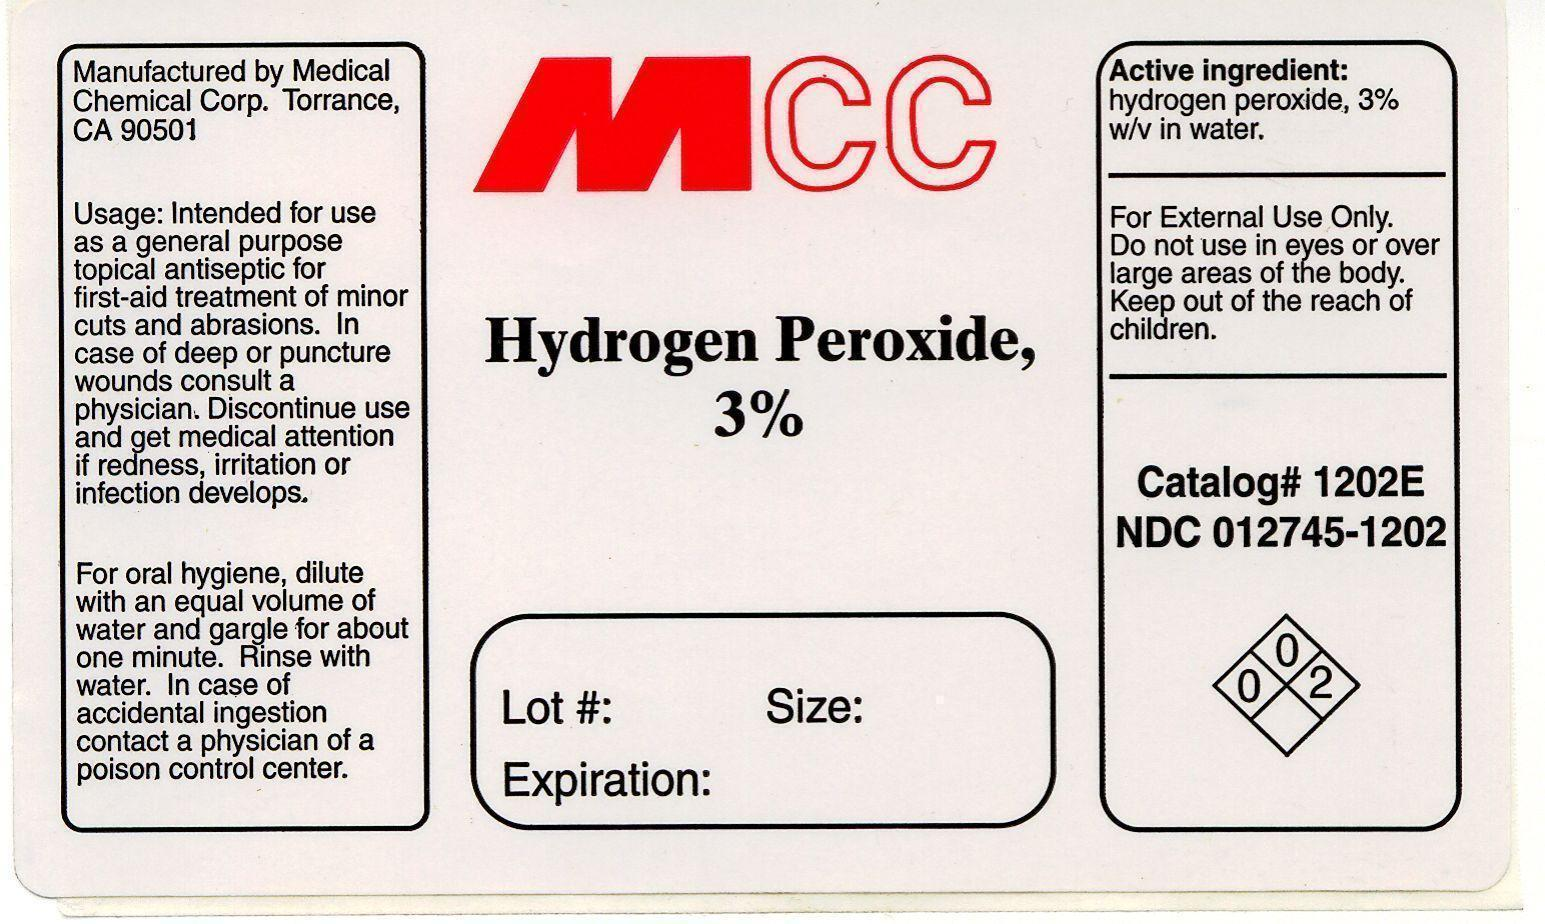 Hydrogen Peroxide Liquid [Medical Chemical Corporation]